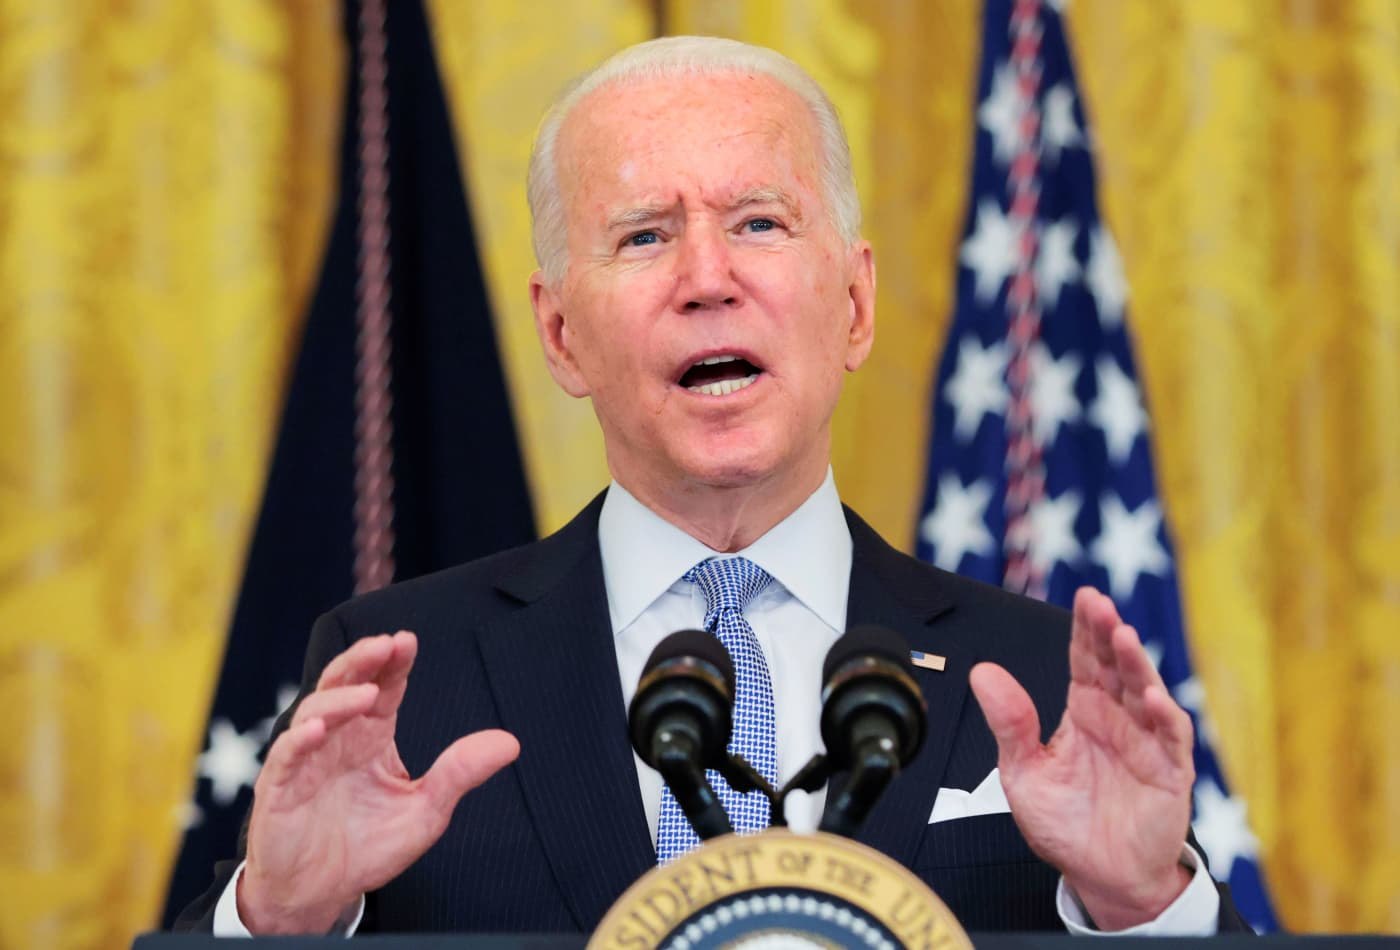 Watch live: Biden speaks after investigators find NY Gov. Andrew Cuomo sexually harassed women